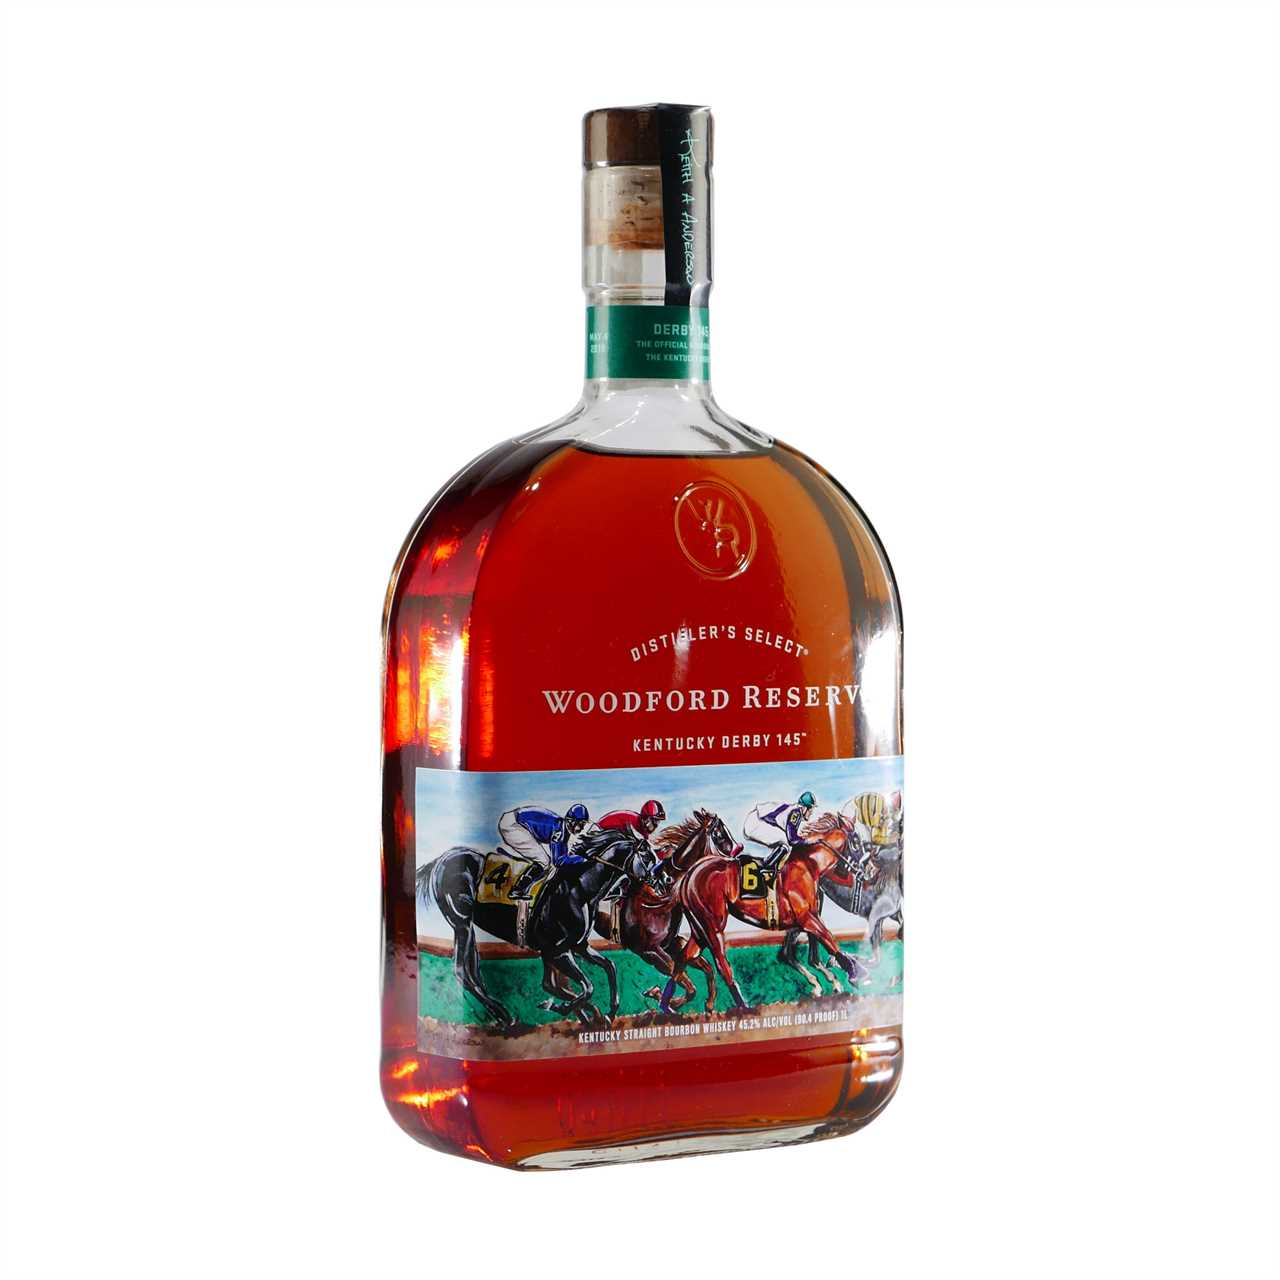 Woodford Reserve Kentucky Derby 25 Bourbon Whiskey